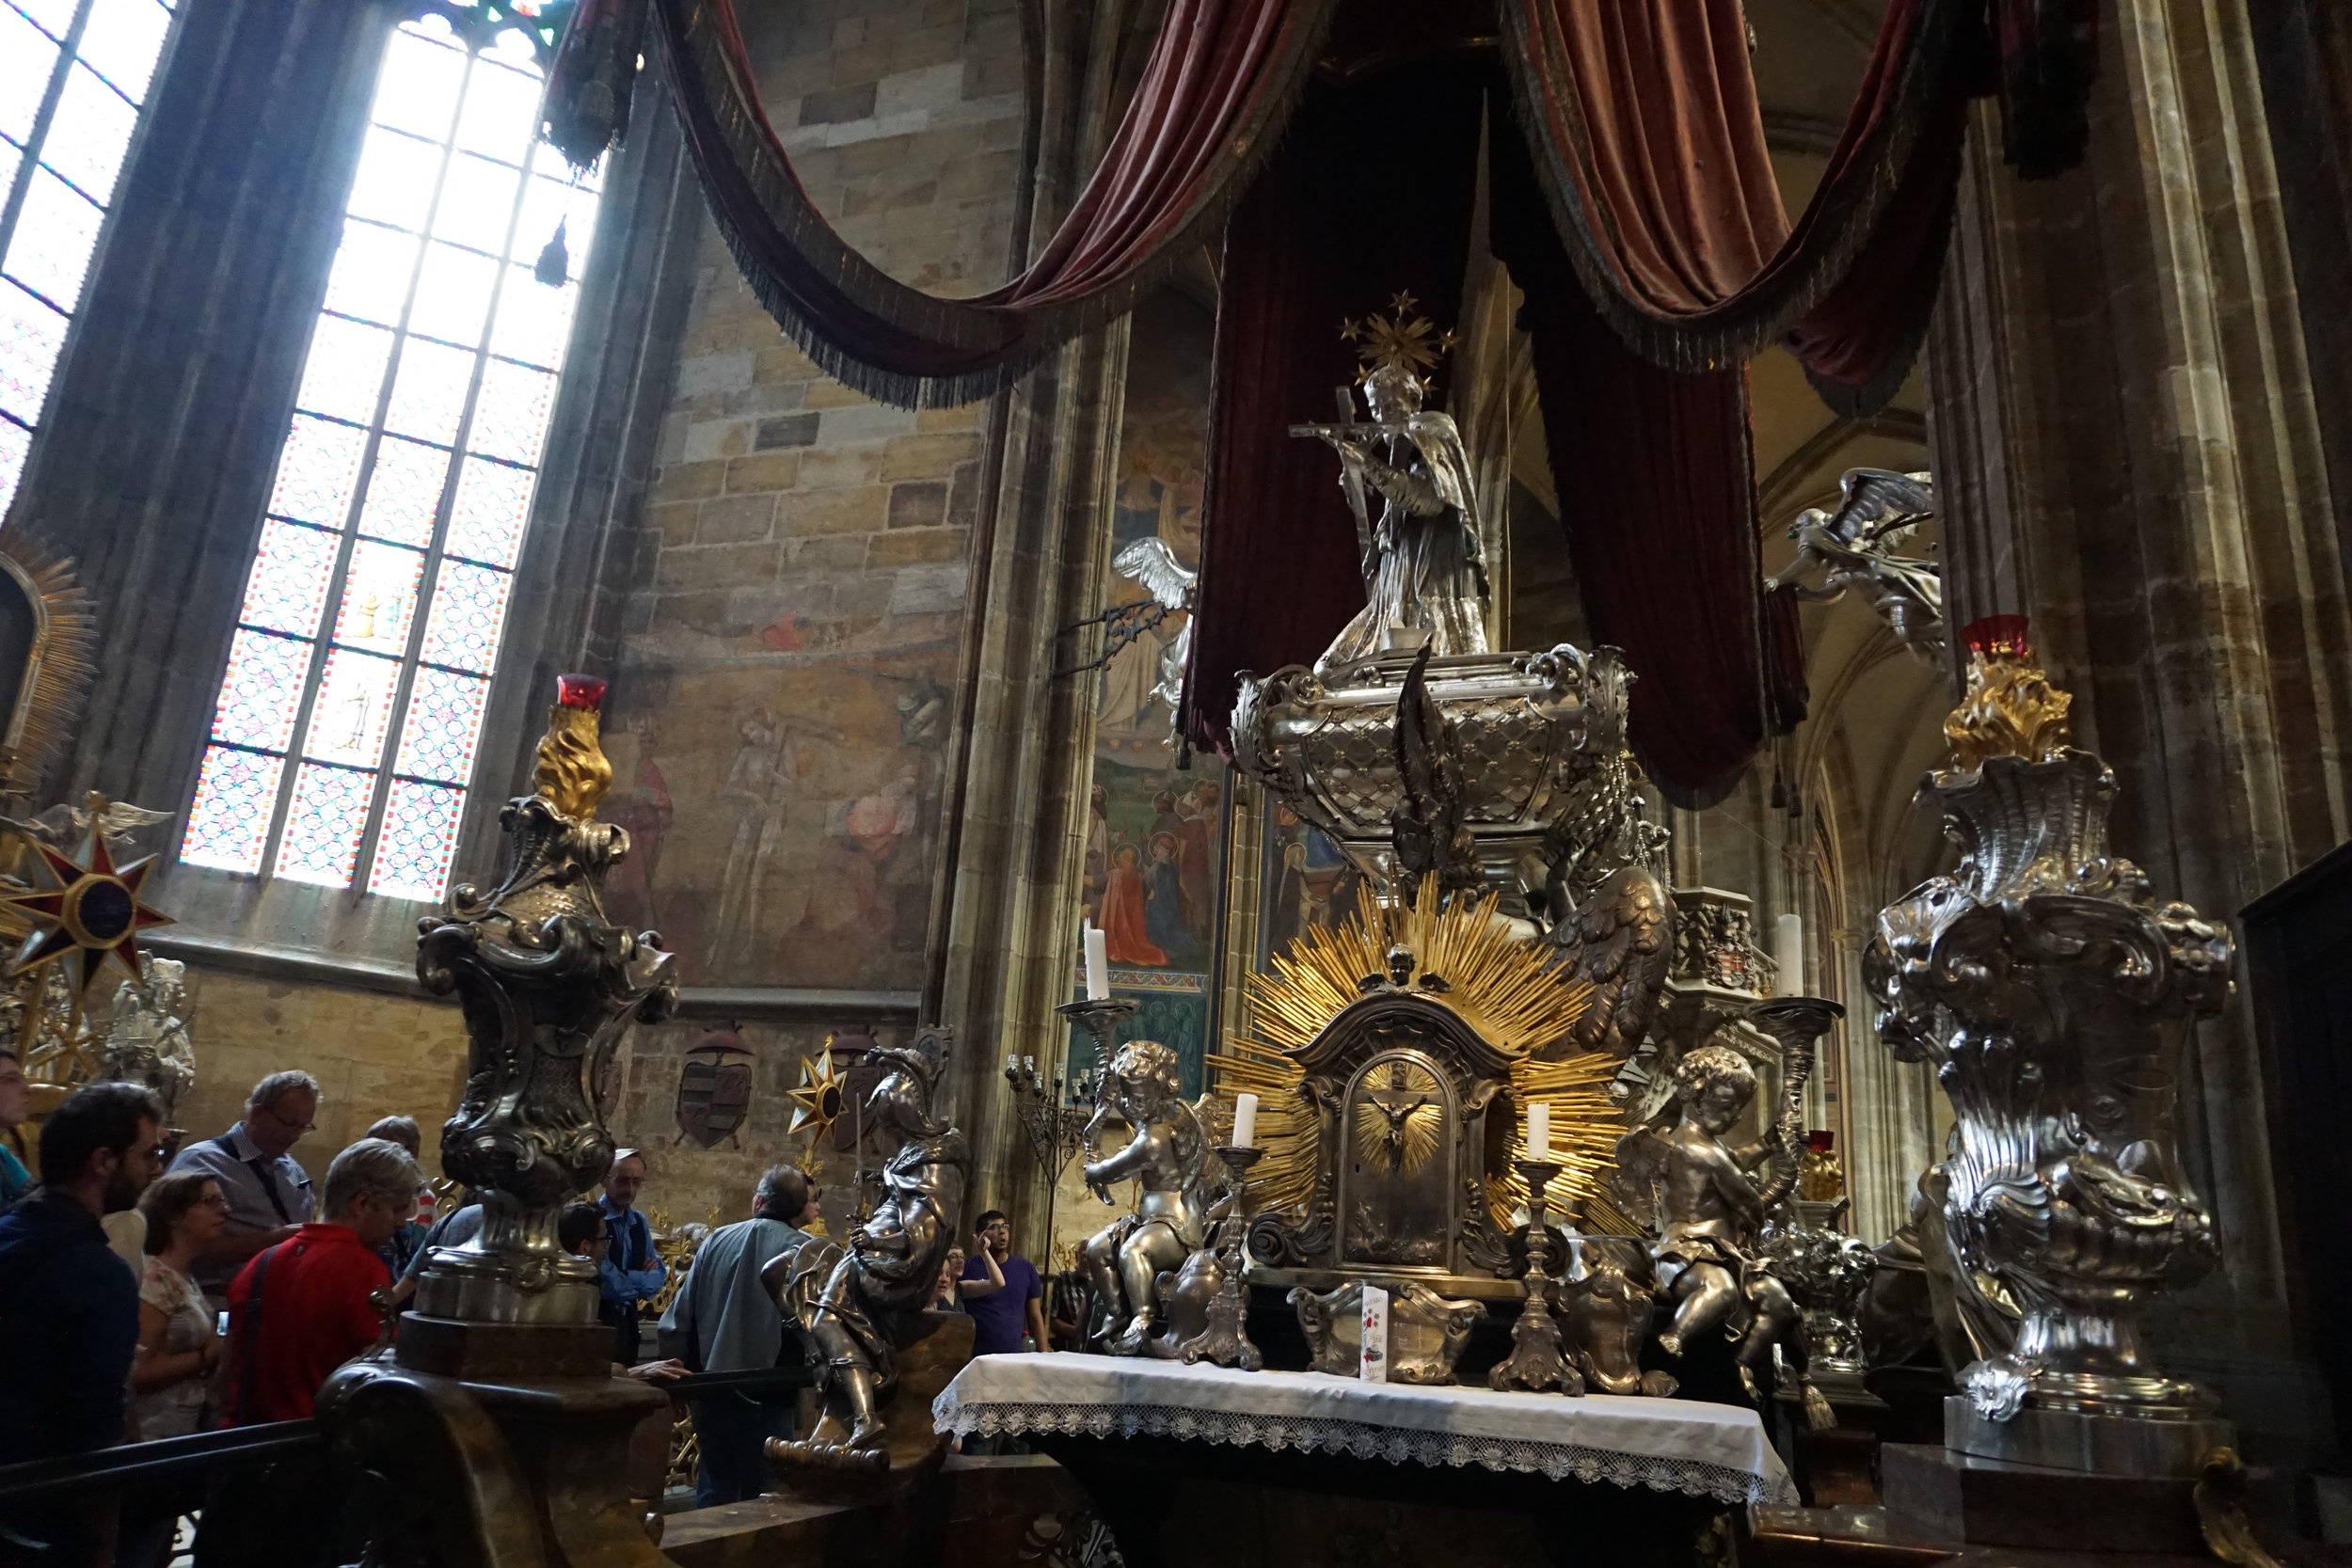 teri_Prague_HradcanyCastle_spiritedtable_photo09.jpg